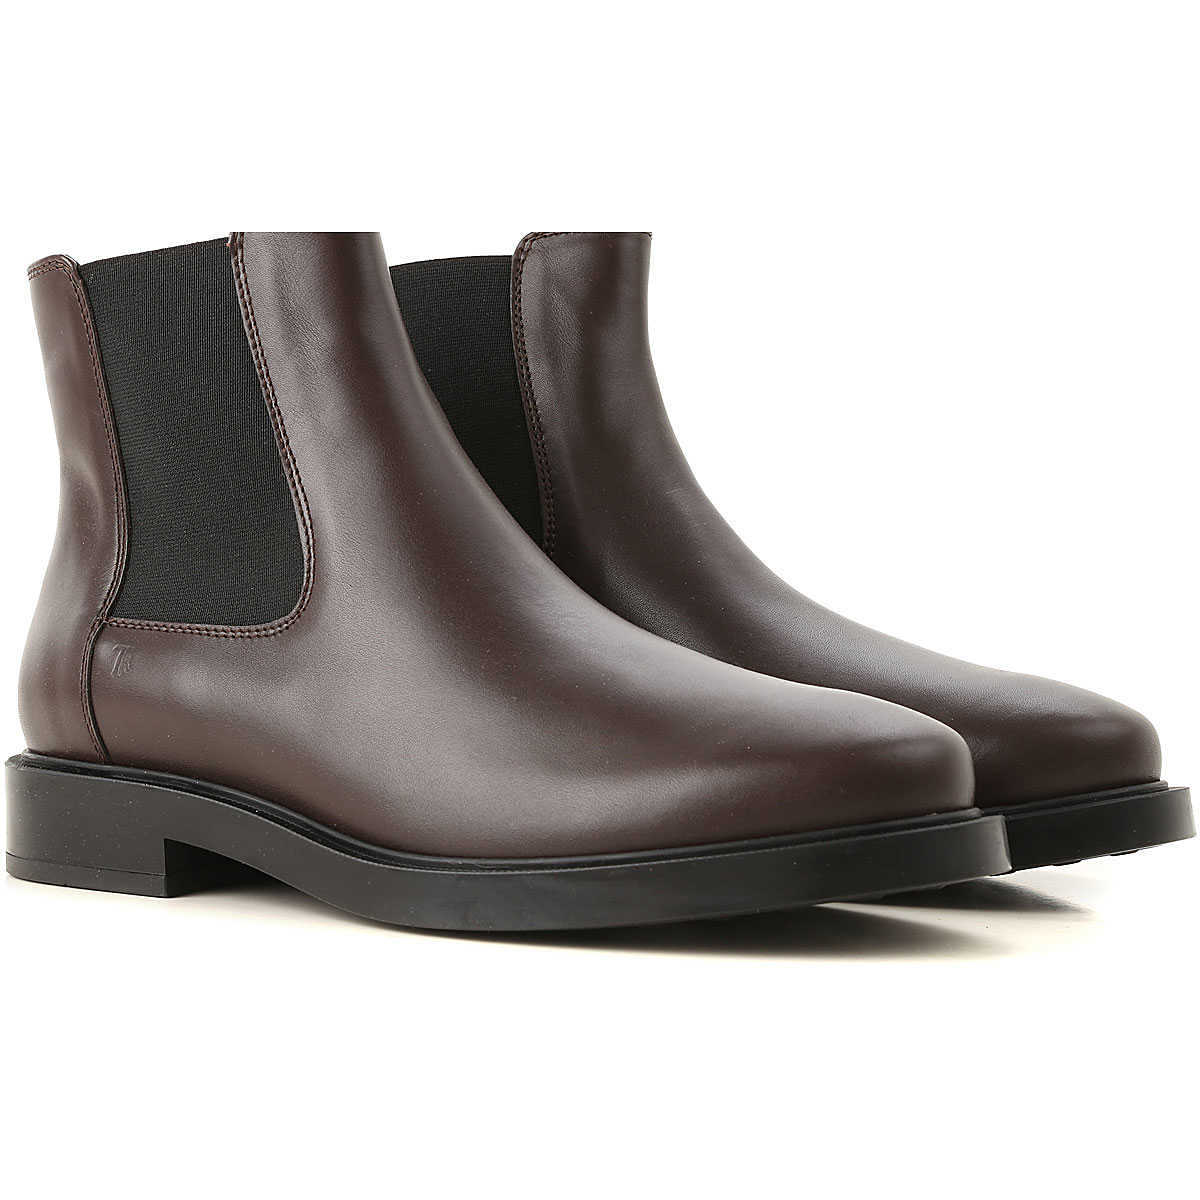 Tods Chelsea Boots for Women On Sale in Outlet Chocolate Brown DK - GOOFASH - Womens BOOTS